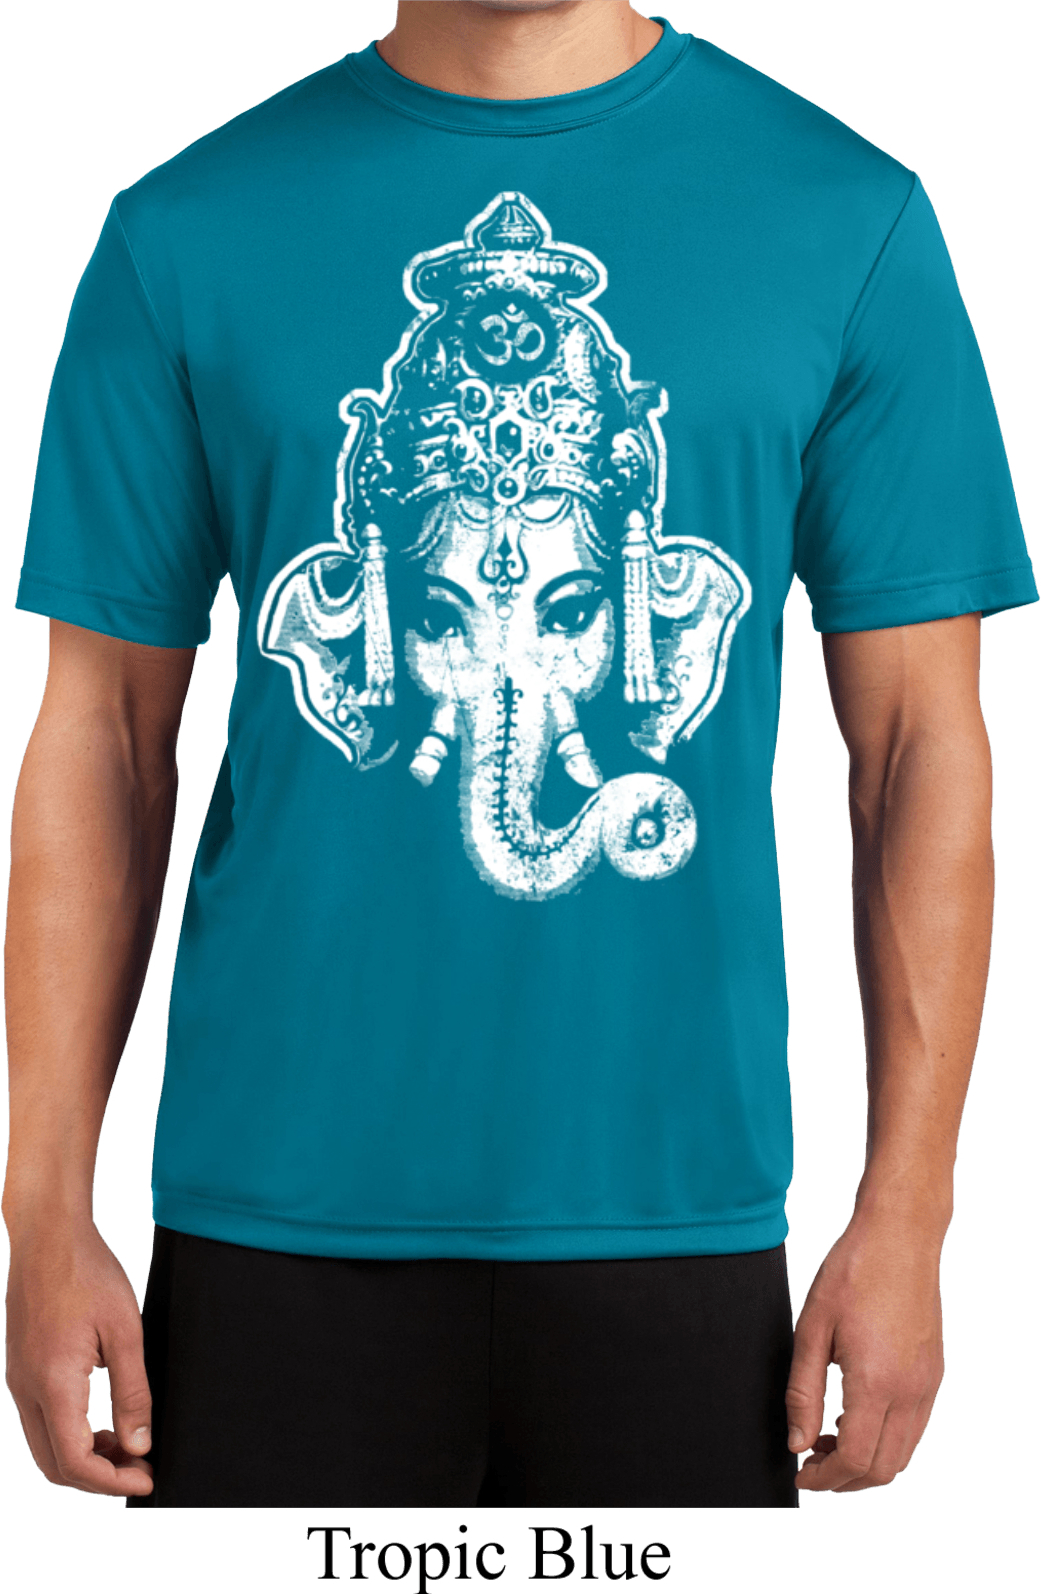 Mens yoga shirt big ganesha head moisture wicking tee t for Sweat wicking t shirts